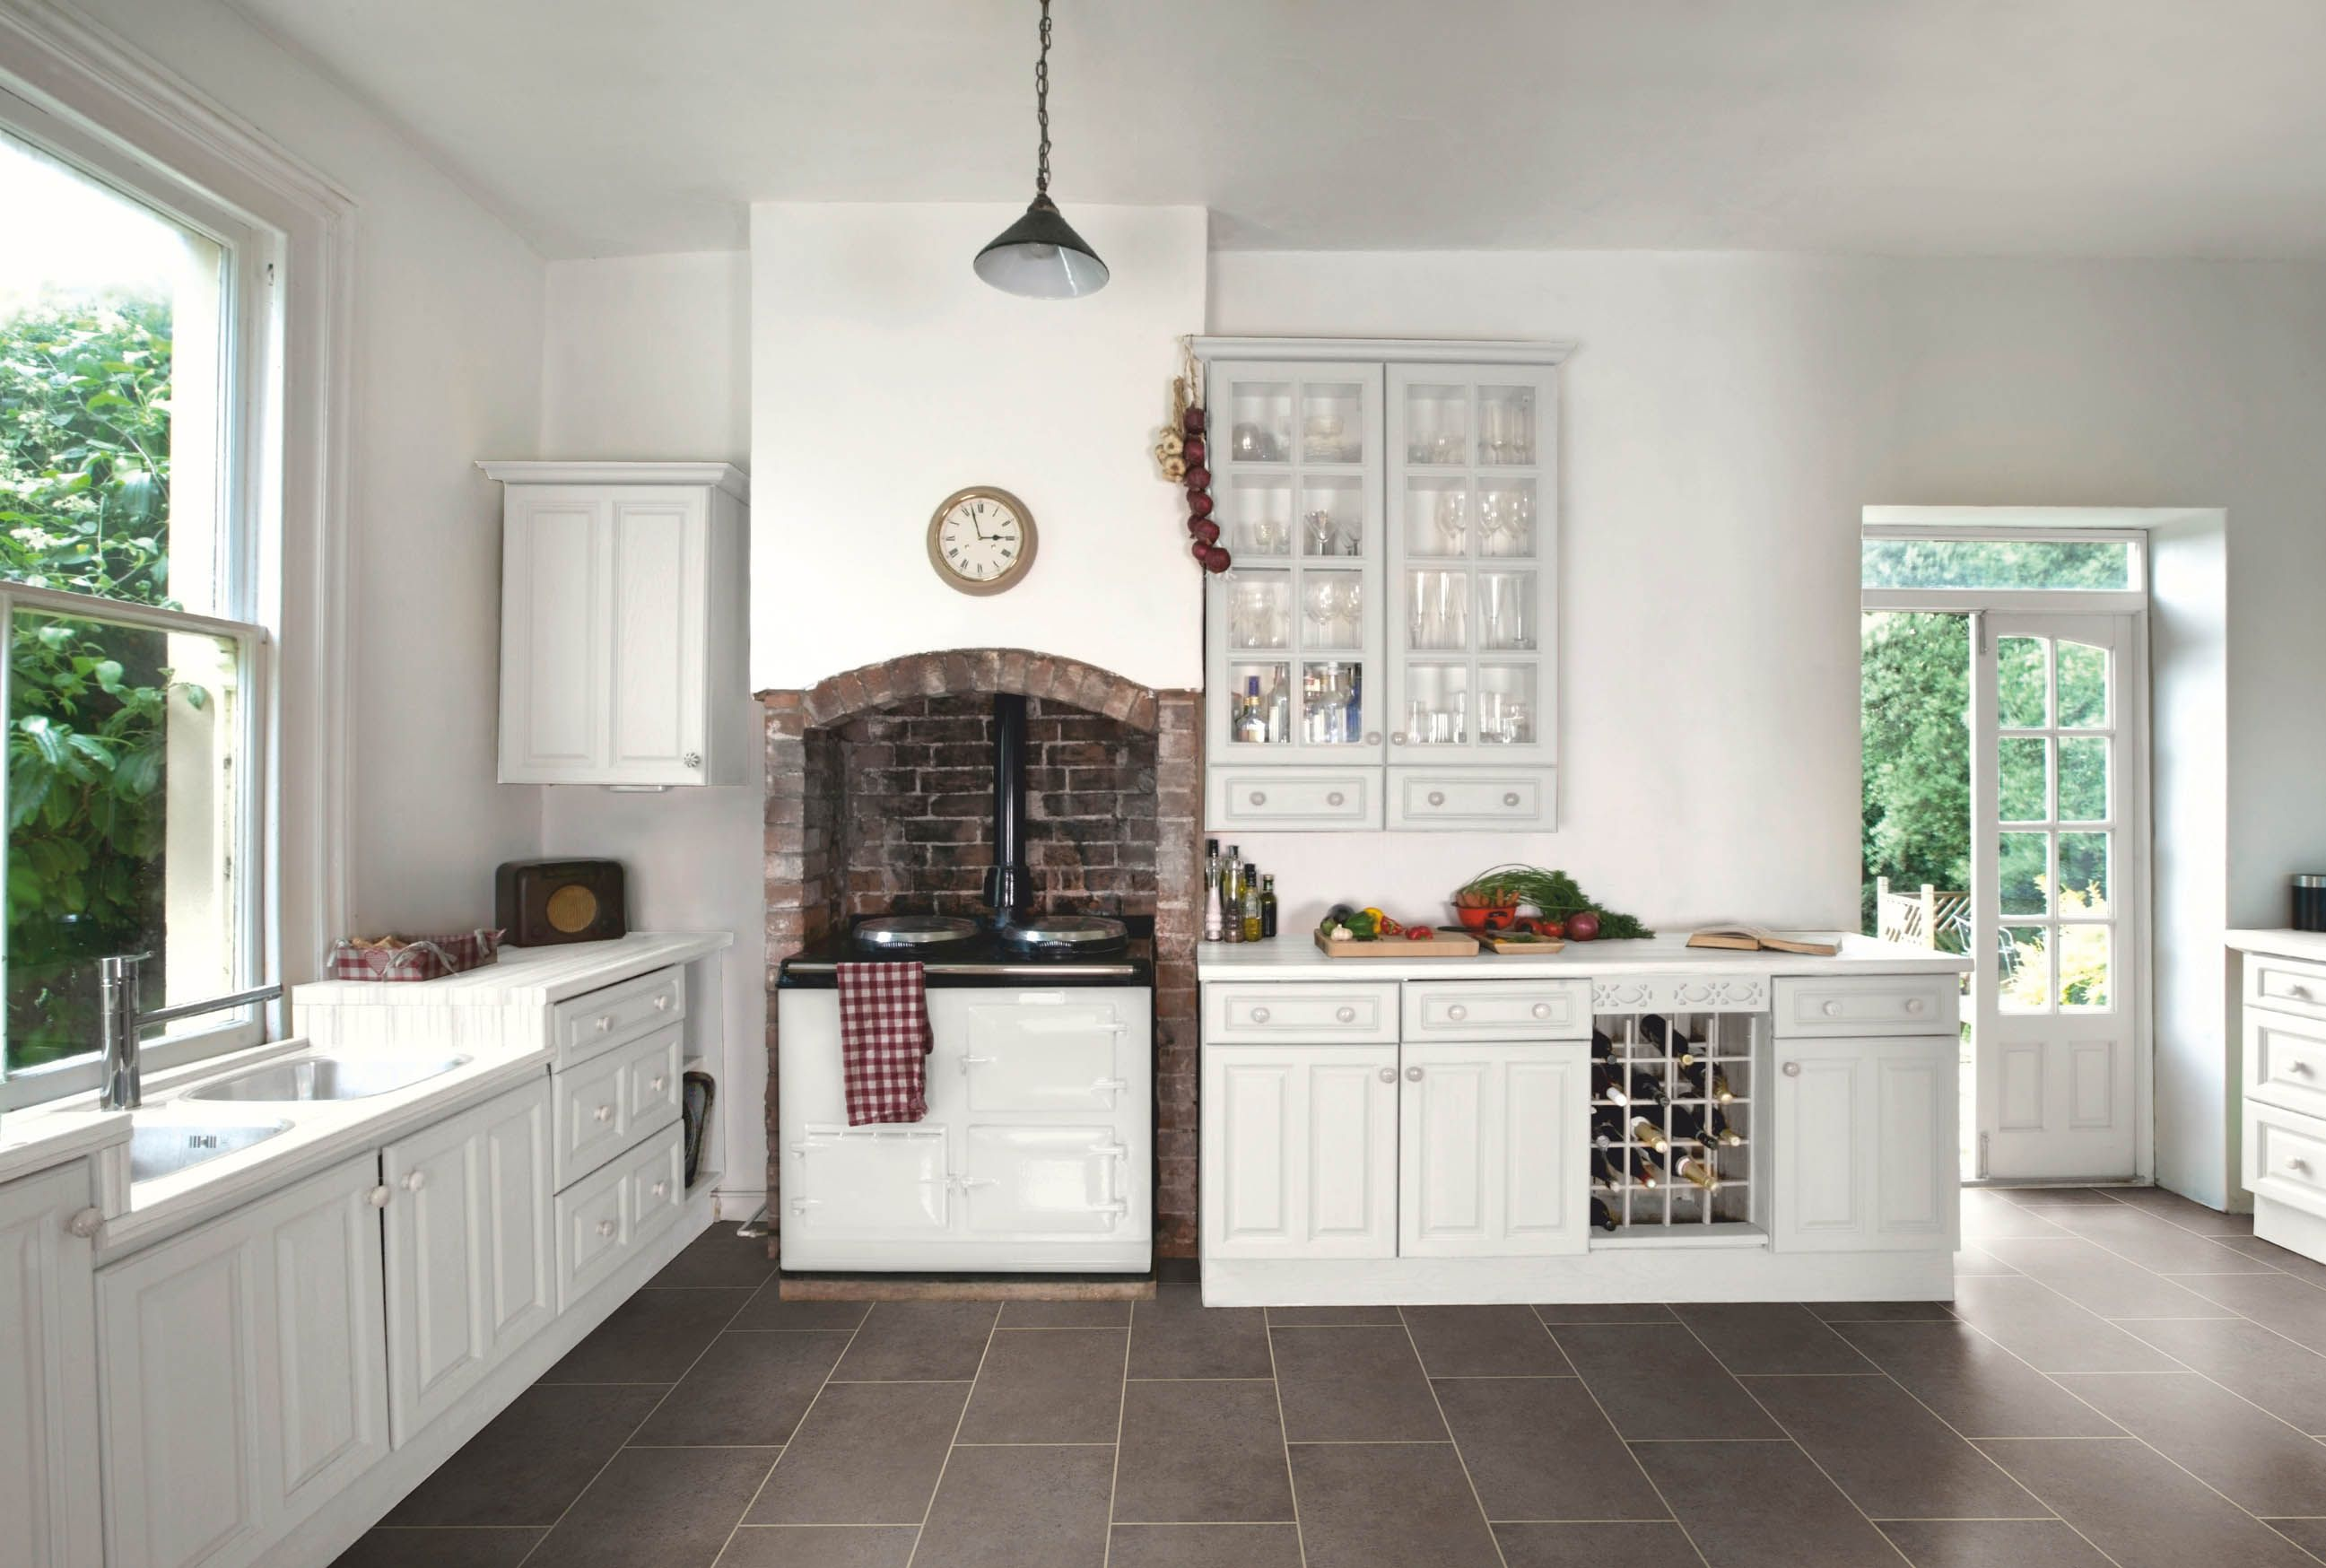 Amtico Spacia Ceramic Sable PVC grindų danga. #kitchens #interior ...